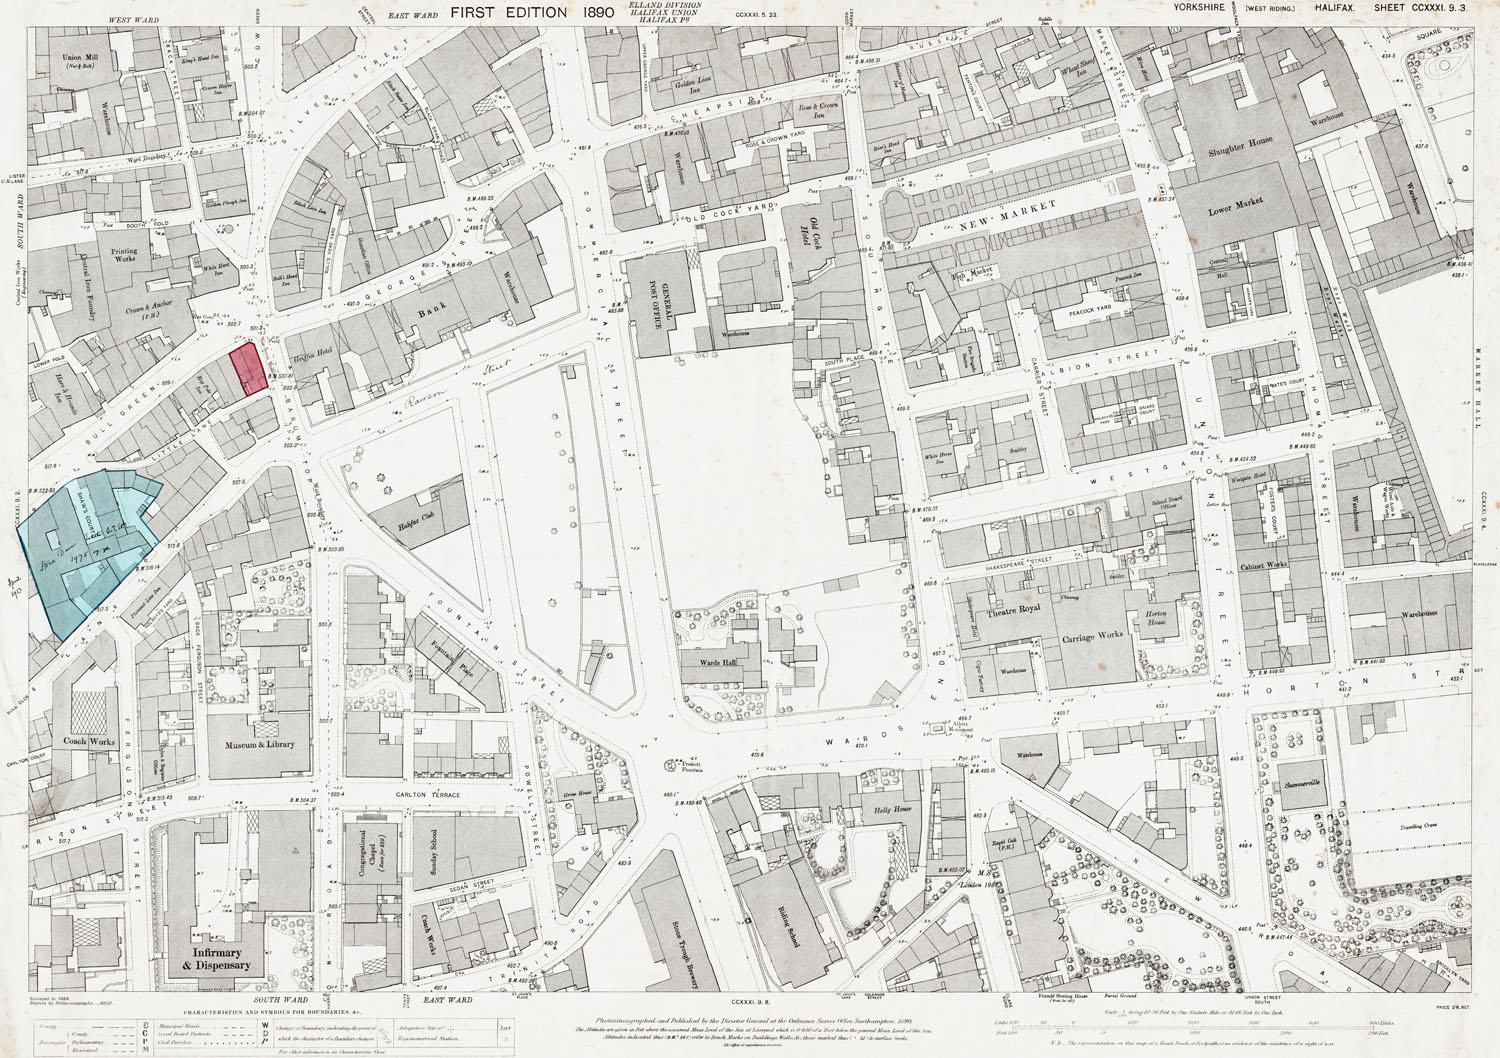 Old Ordnance Survey Map 231 9 3 Halifax Yorkshire In 1890